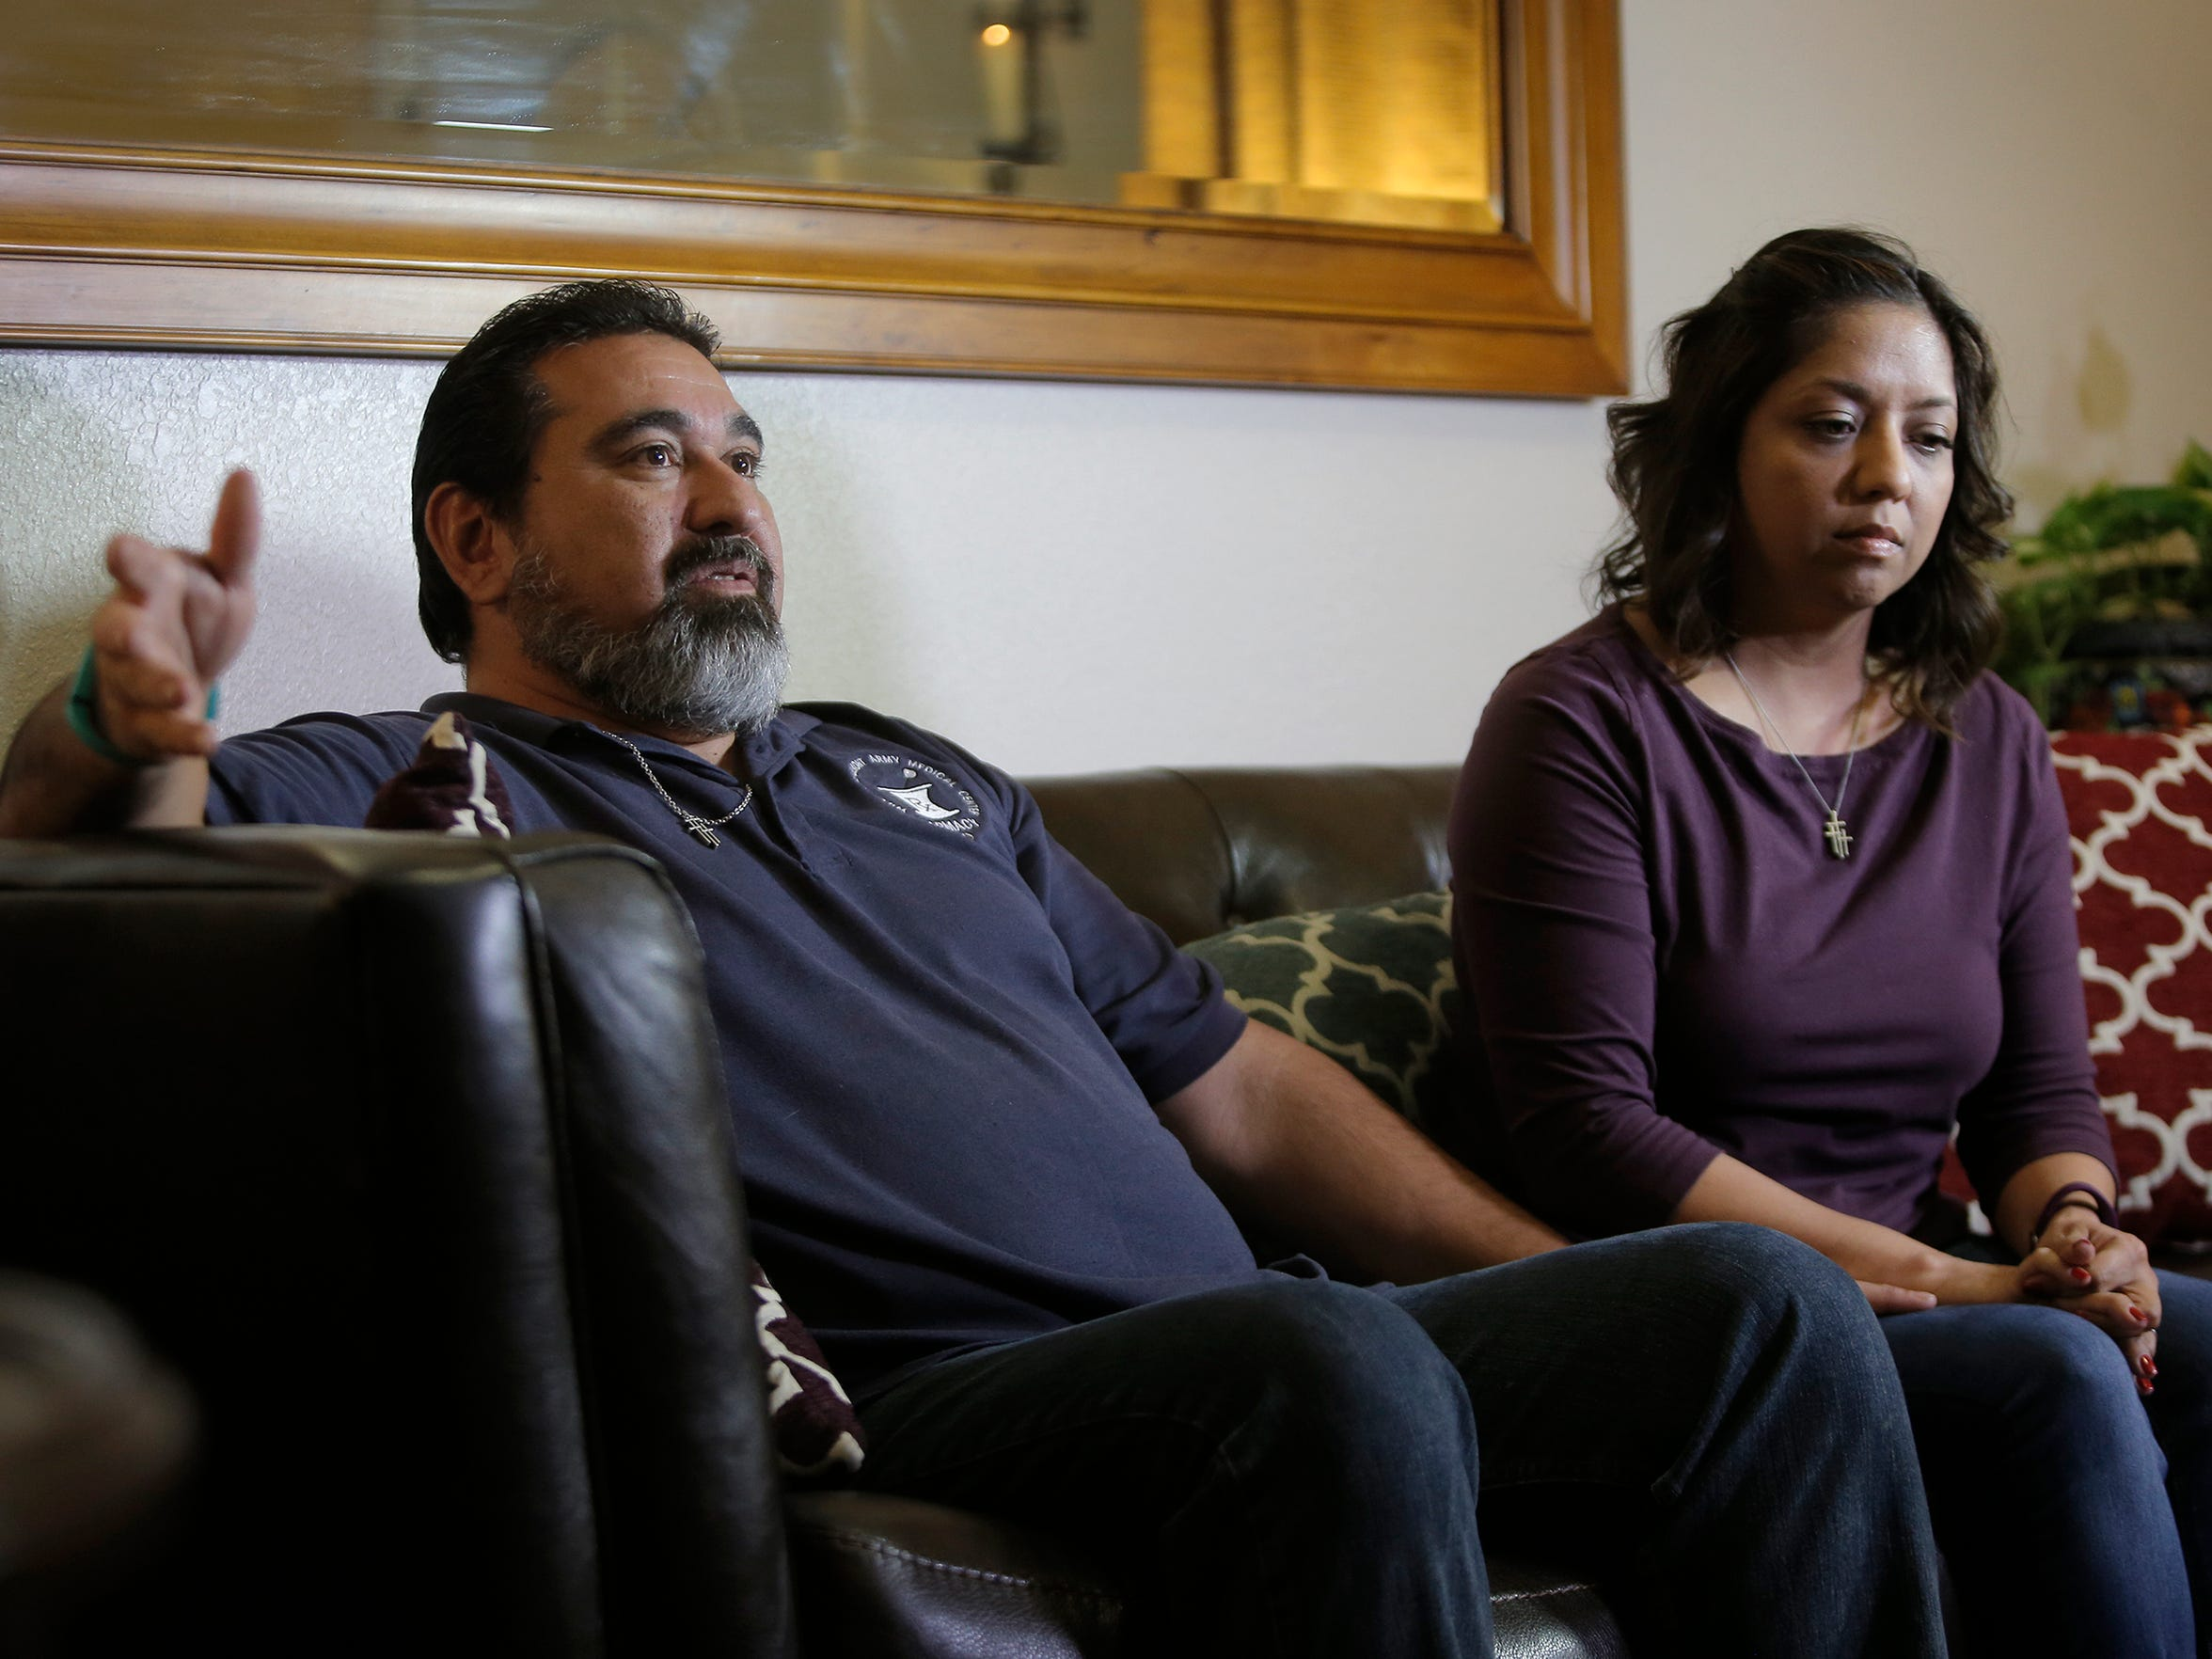 Joshua and Isaiah Deal's stepfather, Richard Cisneros, and their mother, Dee Cisneros, are trying to put their lives back together after the brothers were killed in a crash Christmas Eve.